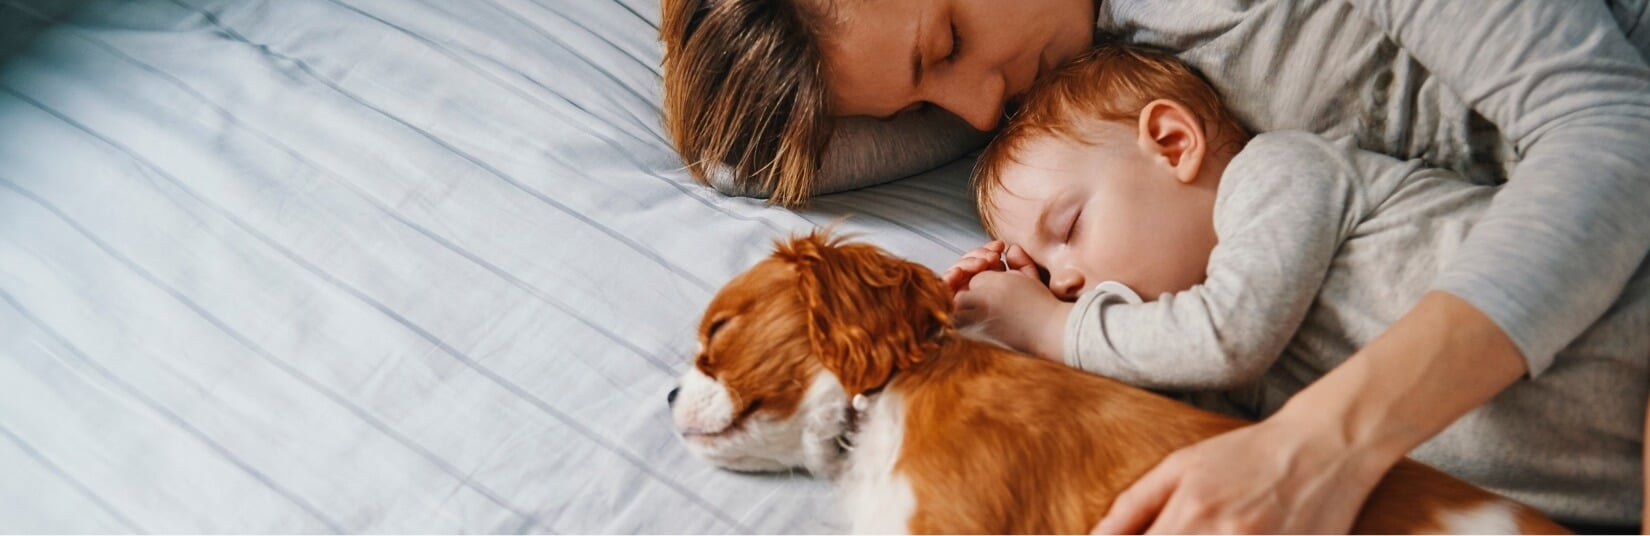 Mom, puppy, and baby